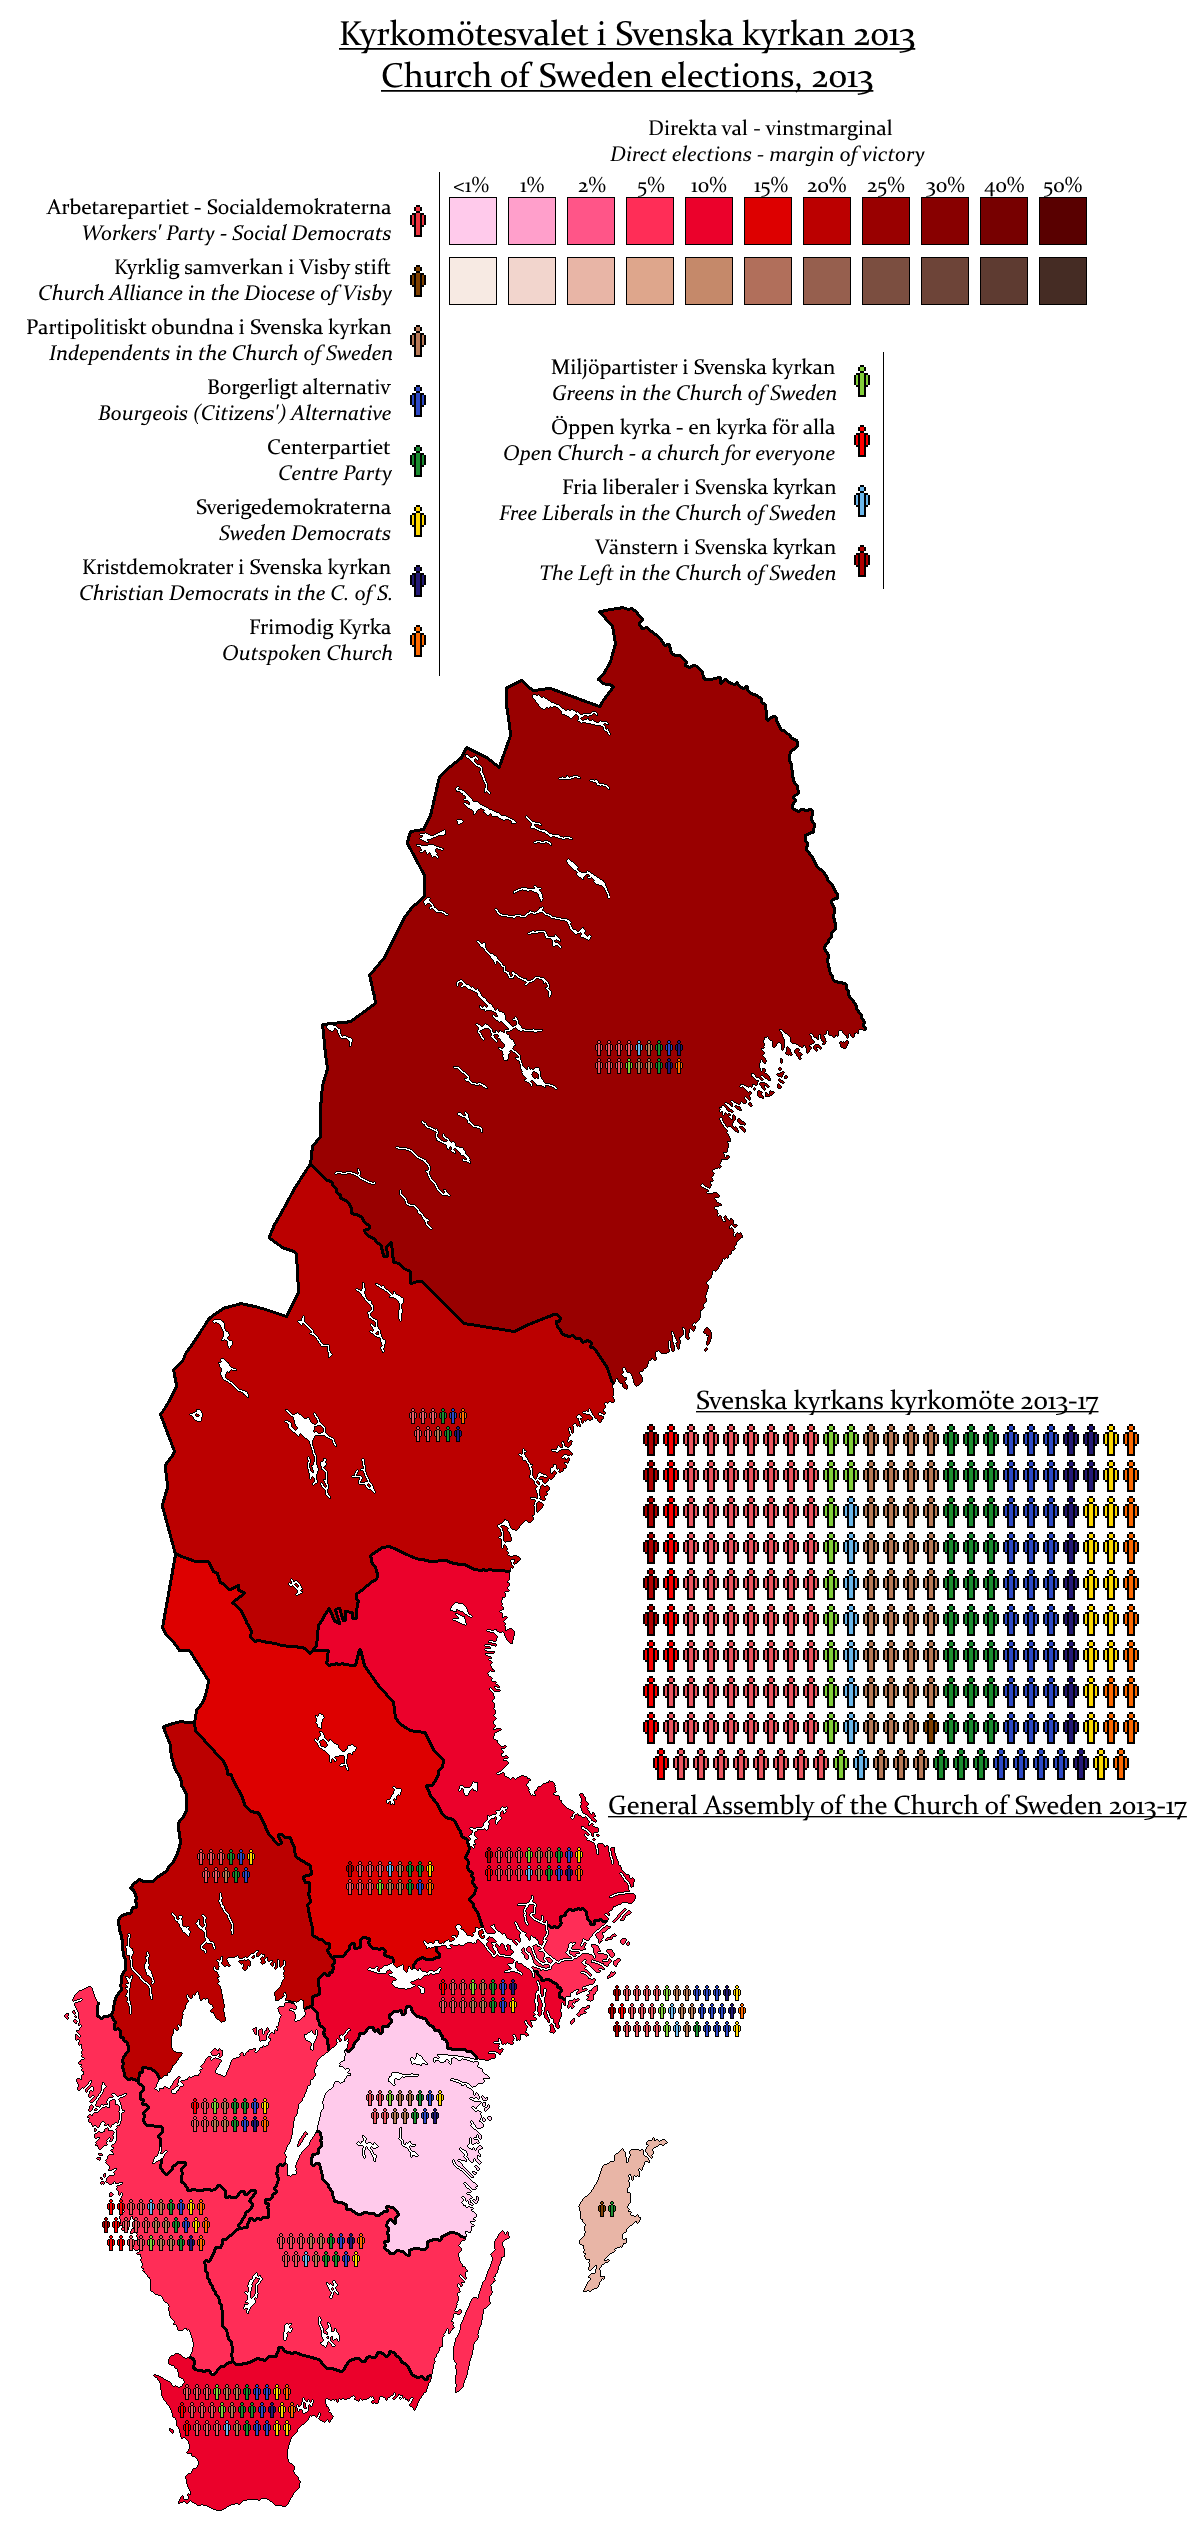 kyrkoval-2013.png